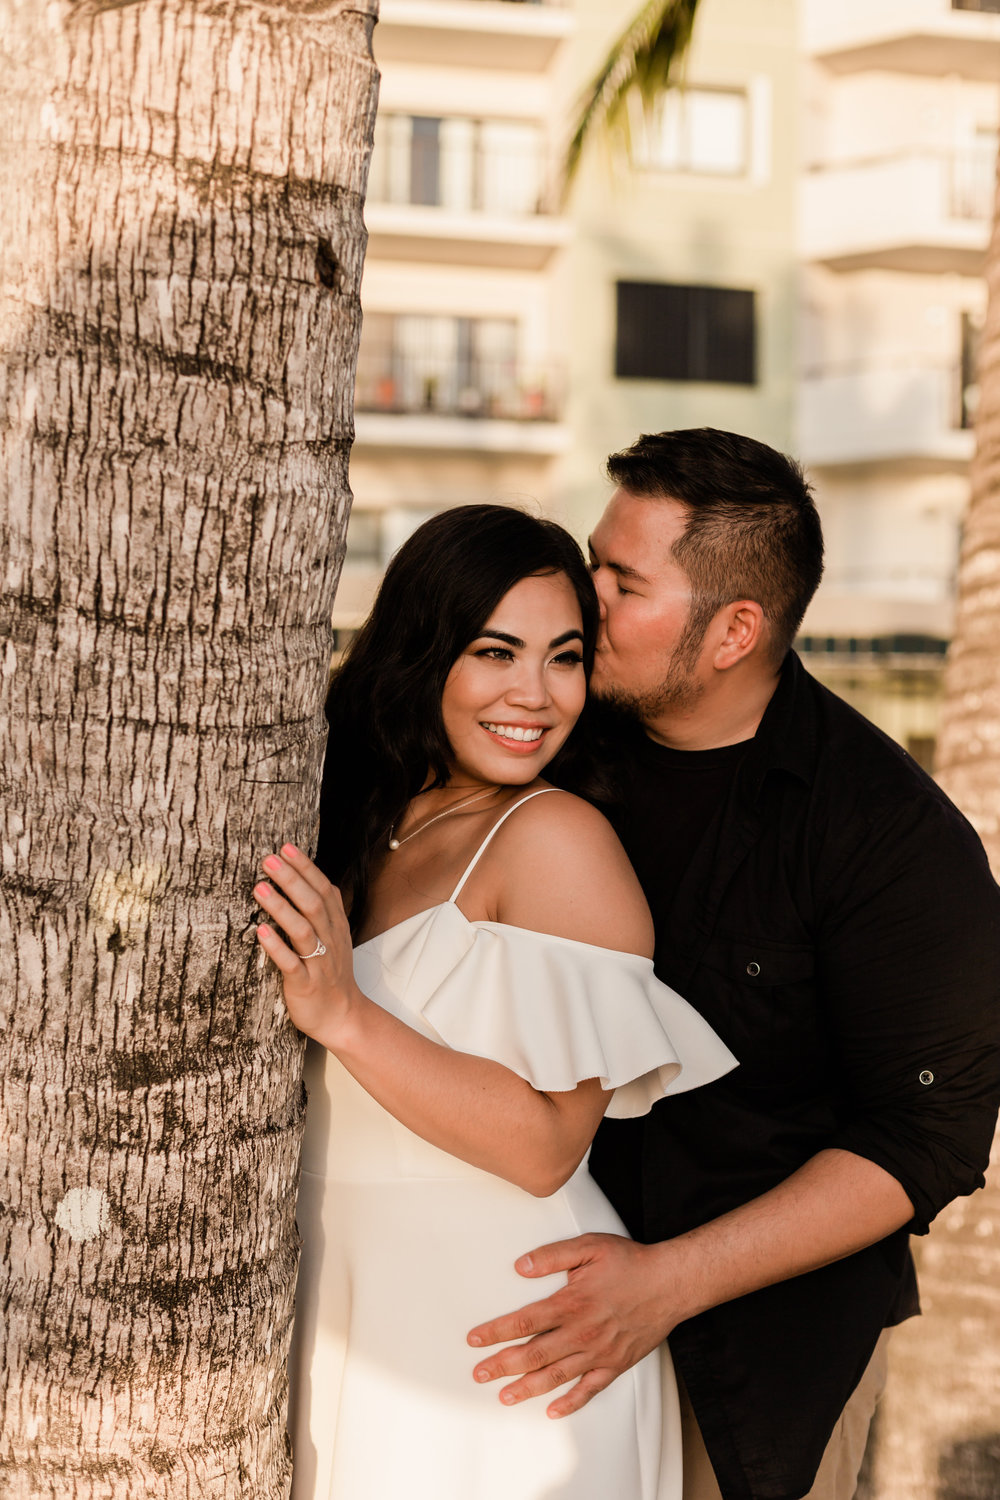 21PIXELS_Guam_Engagement_Photographer194.JPG